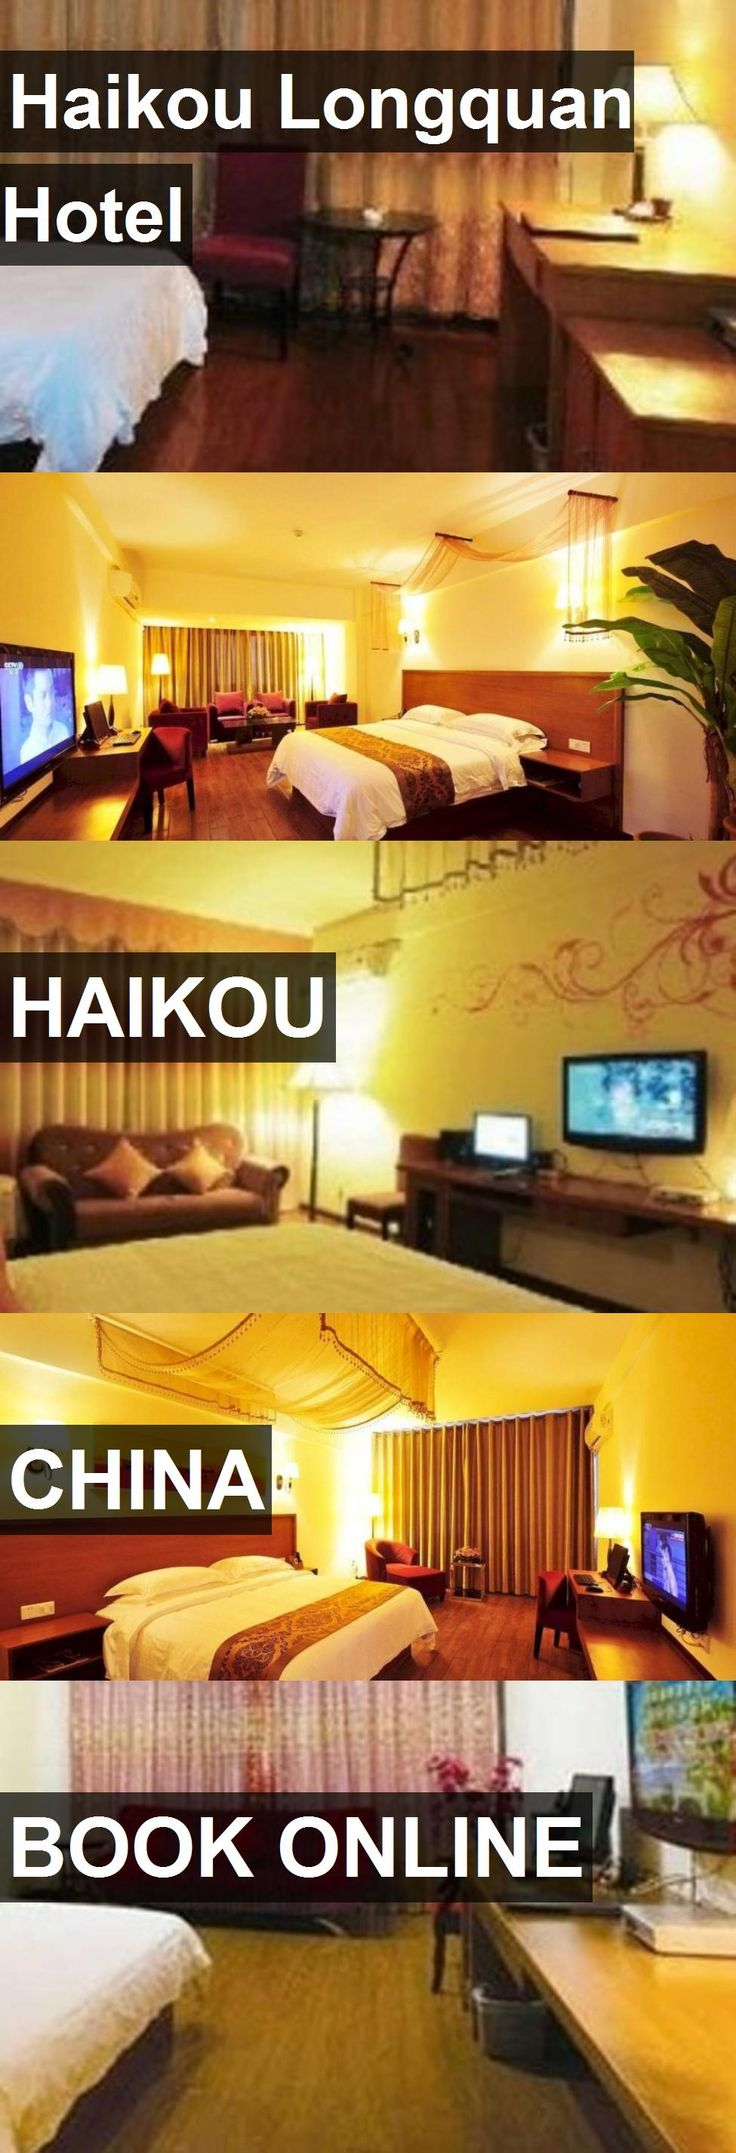 Haikou Longquan Hotel in Haikou, China. For more information, photos, reviews and best prices please follow the link. #China #Haikou #travel #vacation #hotel